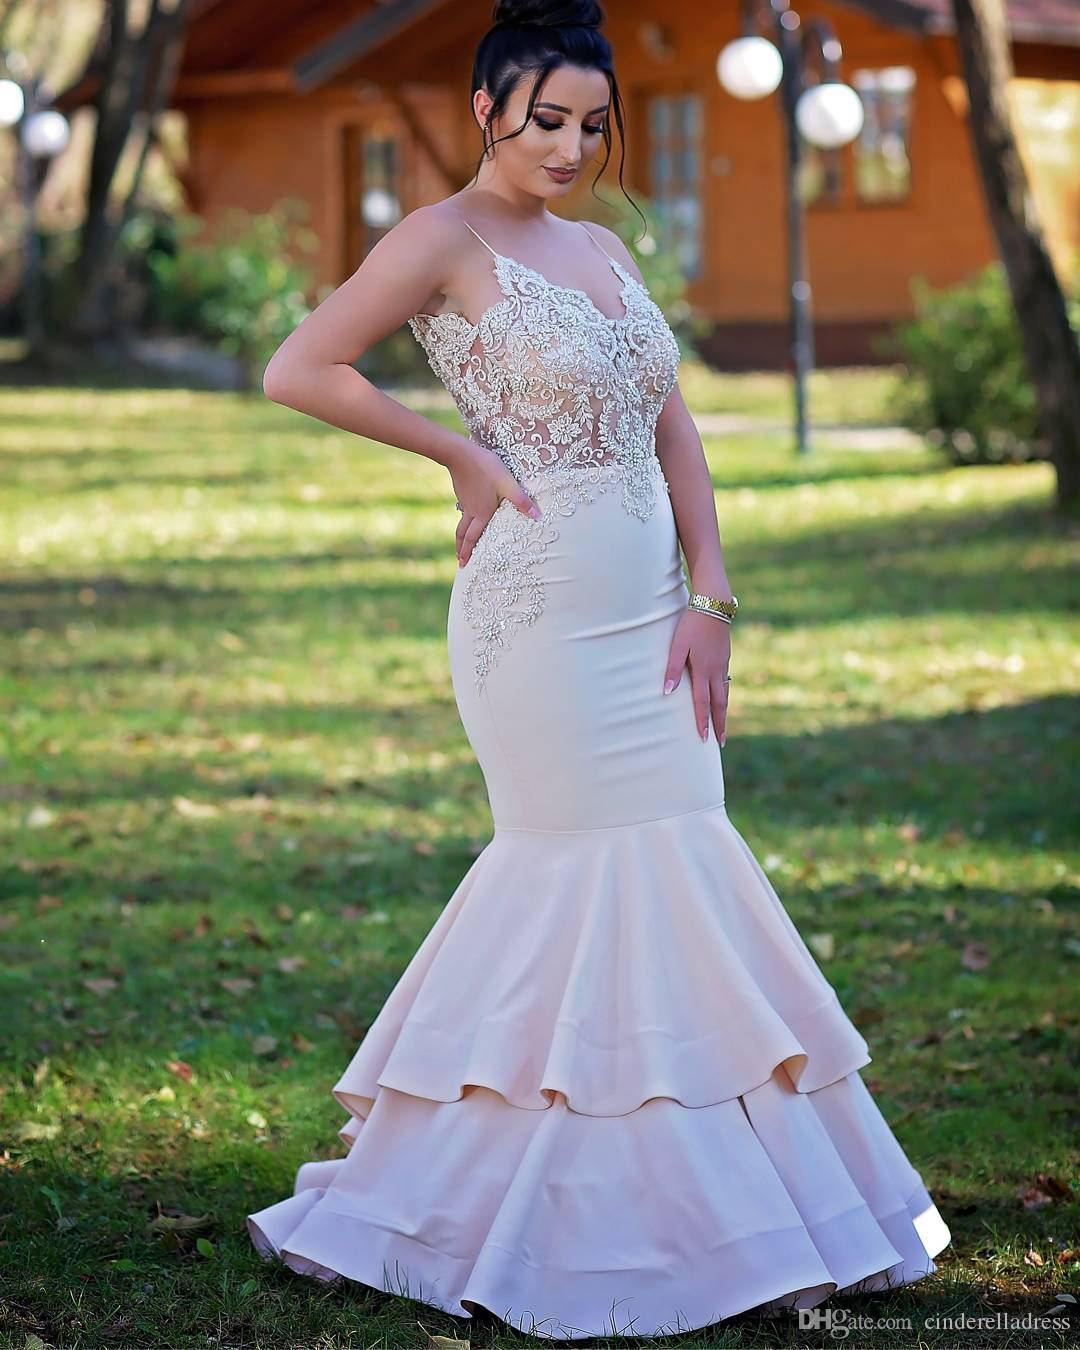 2018 Nigerian African Plus Size Prom Dresses Spaghetti Straps Lace Applique Cut Away Side Layers Skirts Formal Evening Gowns